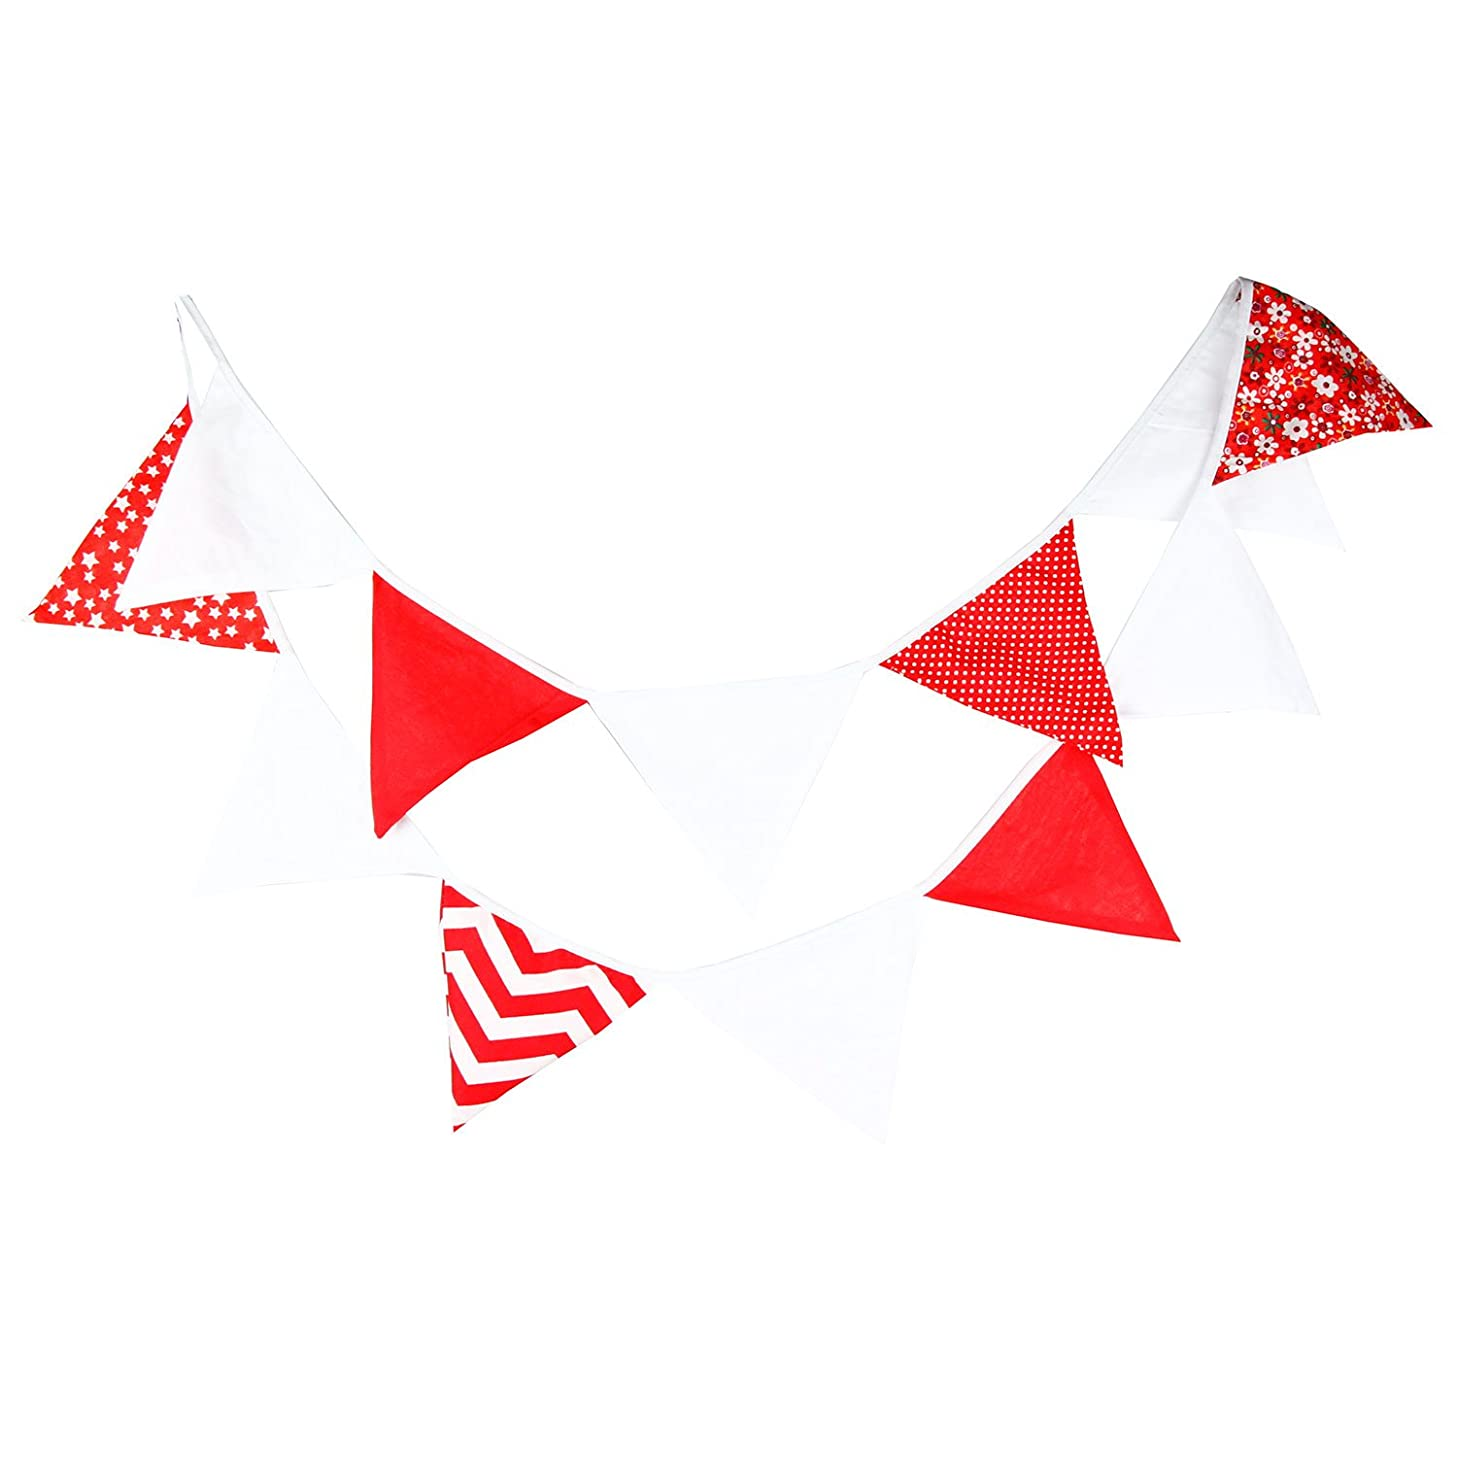 INFEI 3.2M/ 10.5Ft Multicolored White Fabric Triangle Flag Buntings Garlands for Wedding, Birthday Party, Outdoor & Home Decoration (Red)